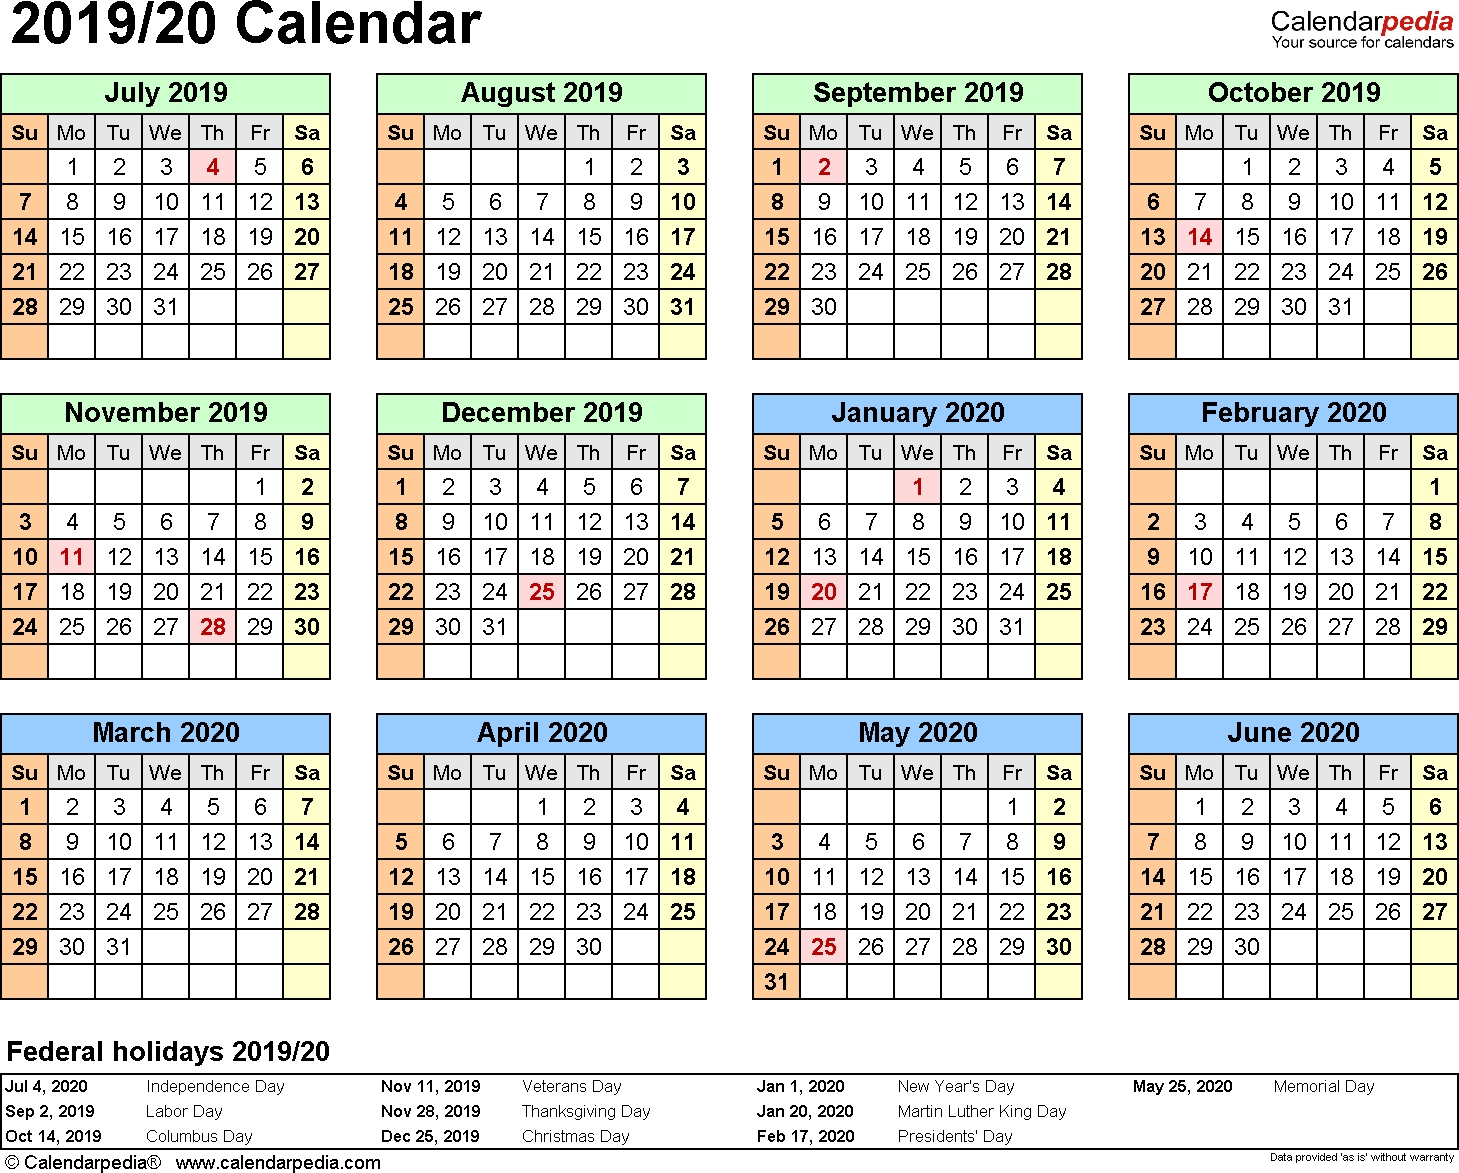 Split Year Calendar 2019/20 (July To June) - Pdf Templates  2020 20 Australian Financial Year Calendar